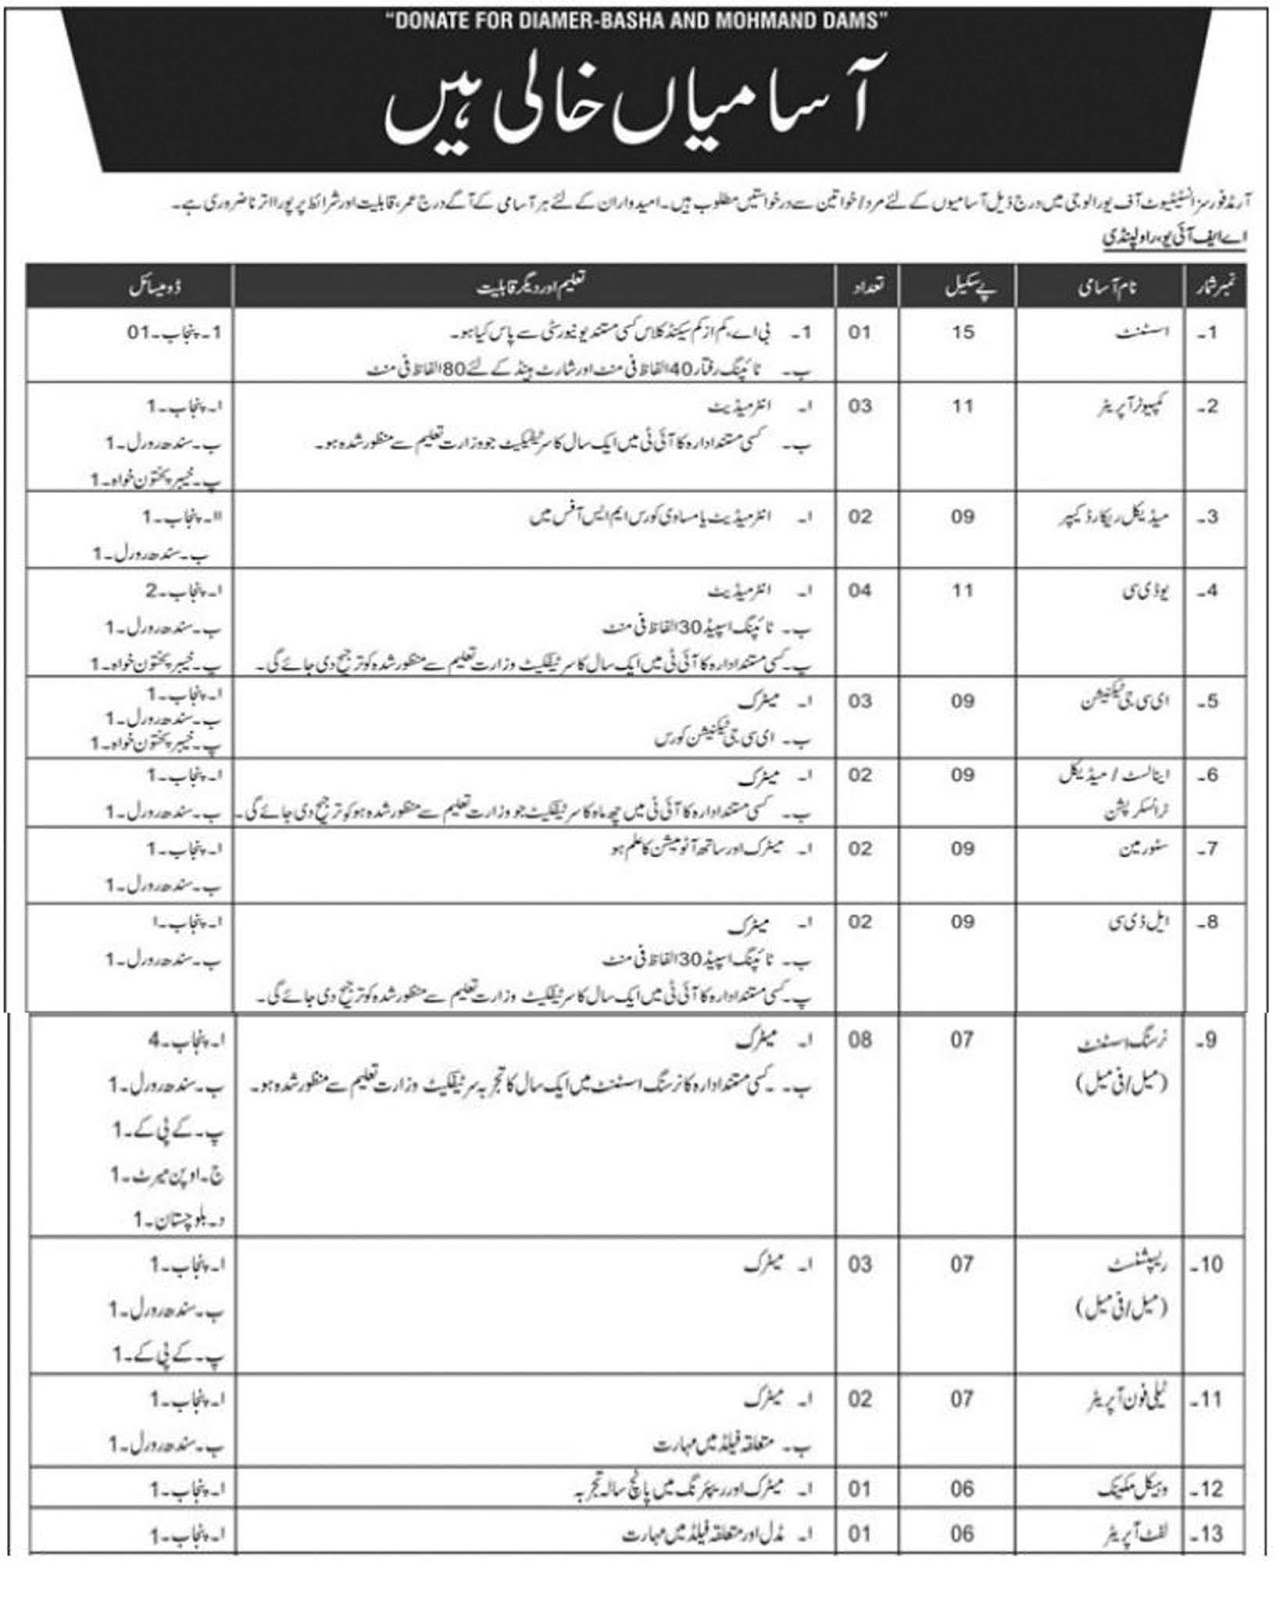 AFIR Rawalpindi jobs 2019 UTS Application Form Download